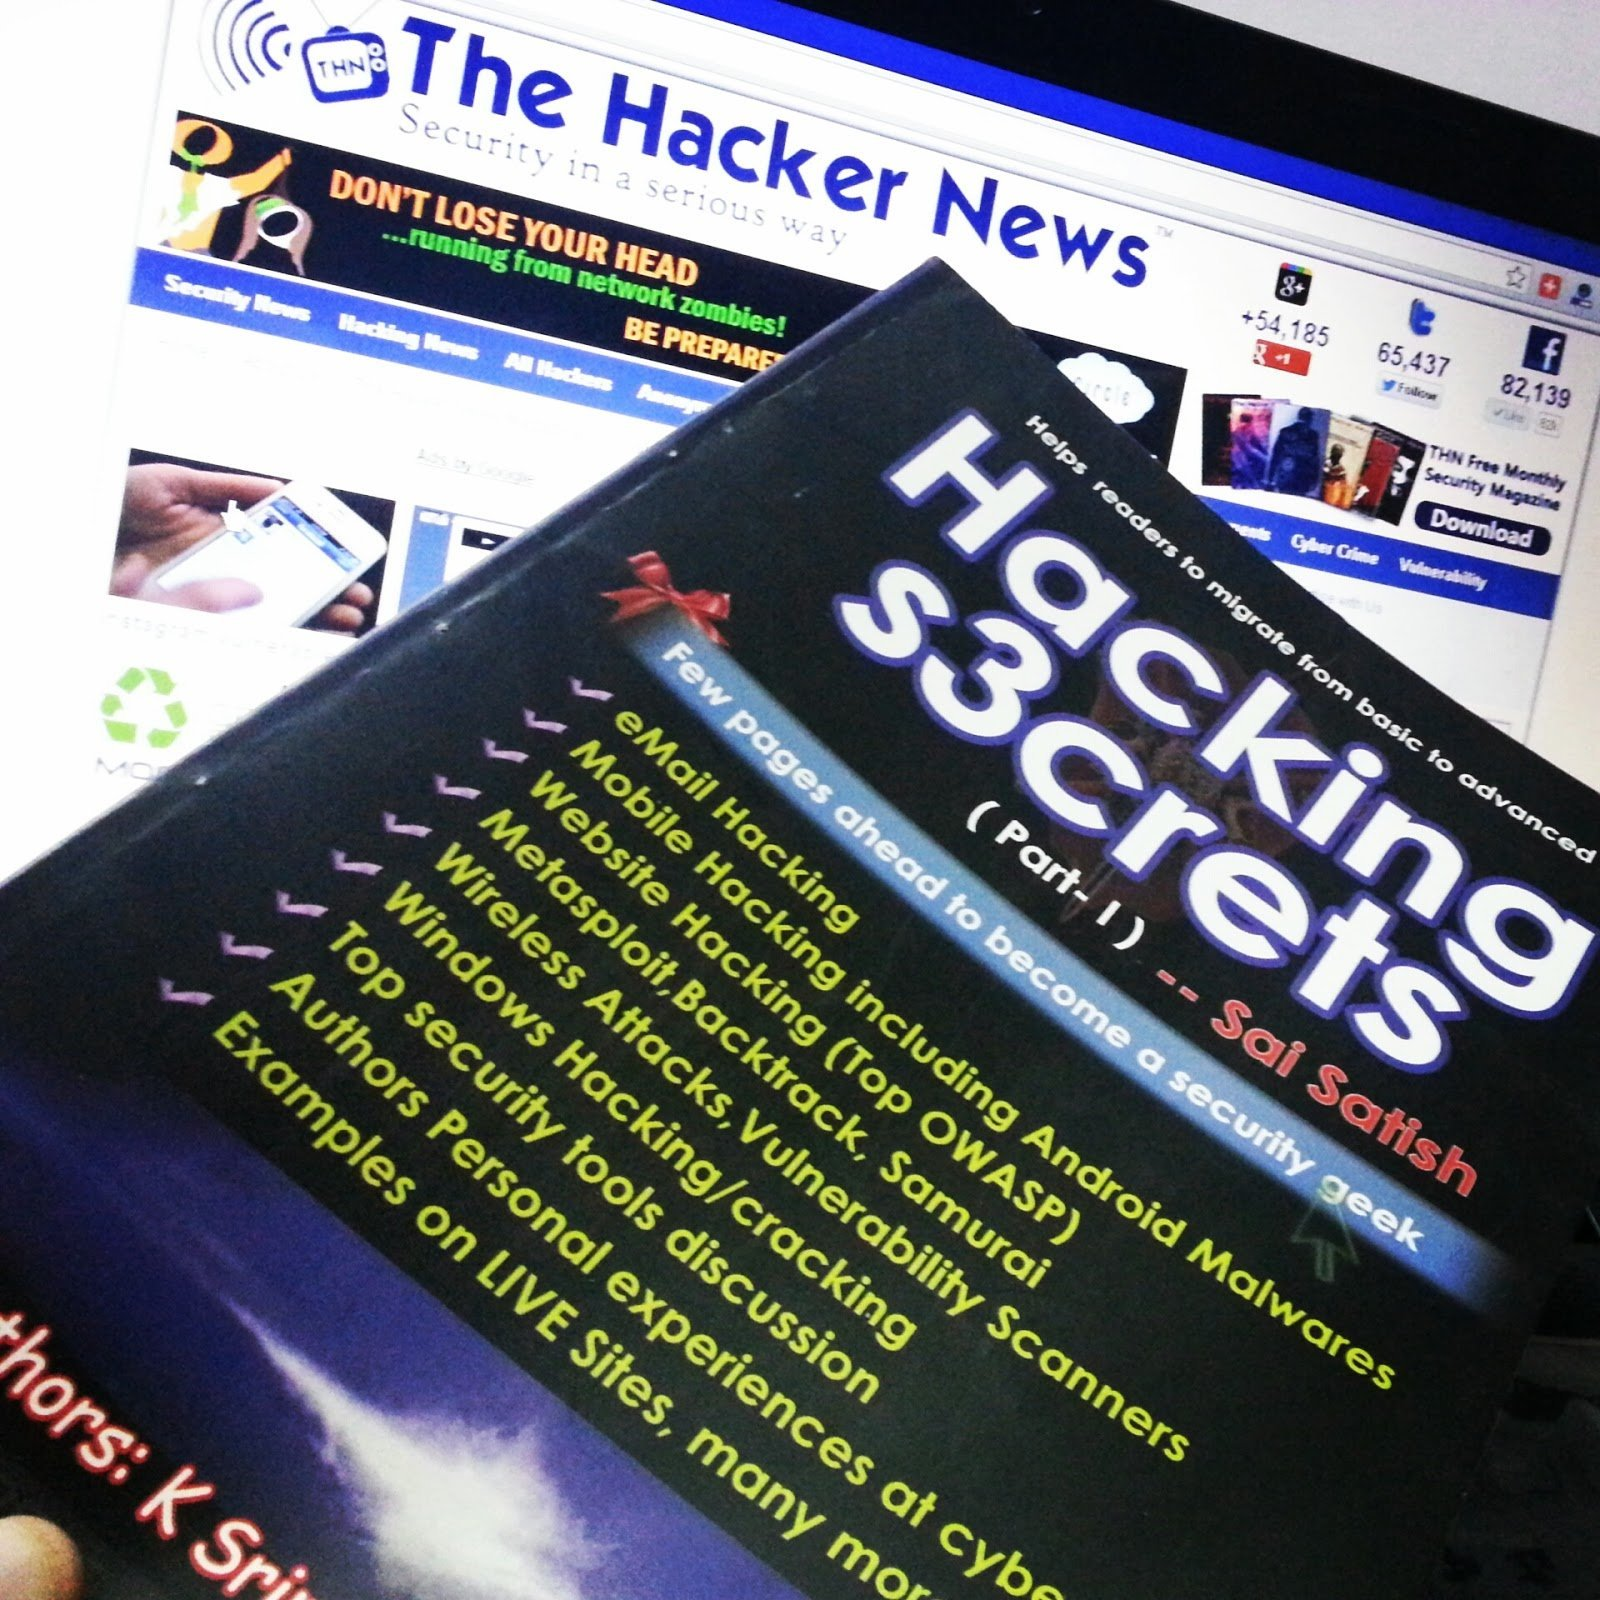 Buy Hacking Secrets - A Practical Guide to learn HACKING